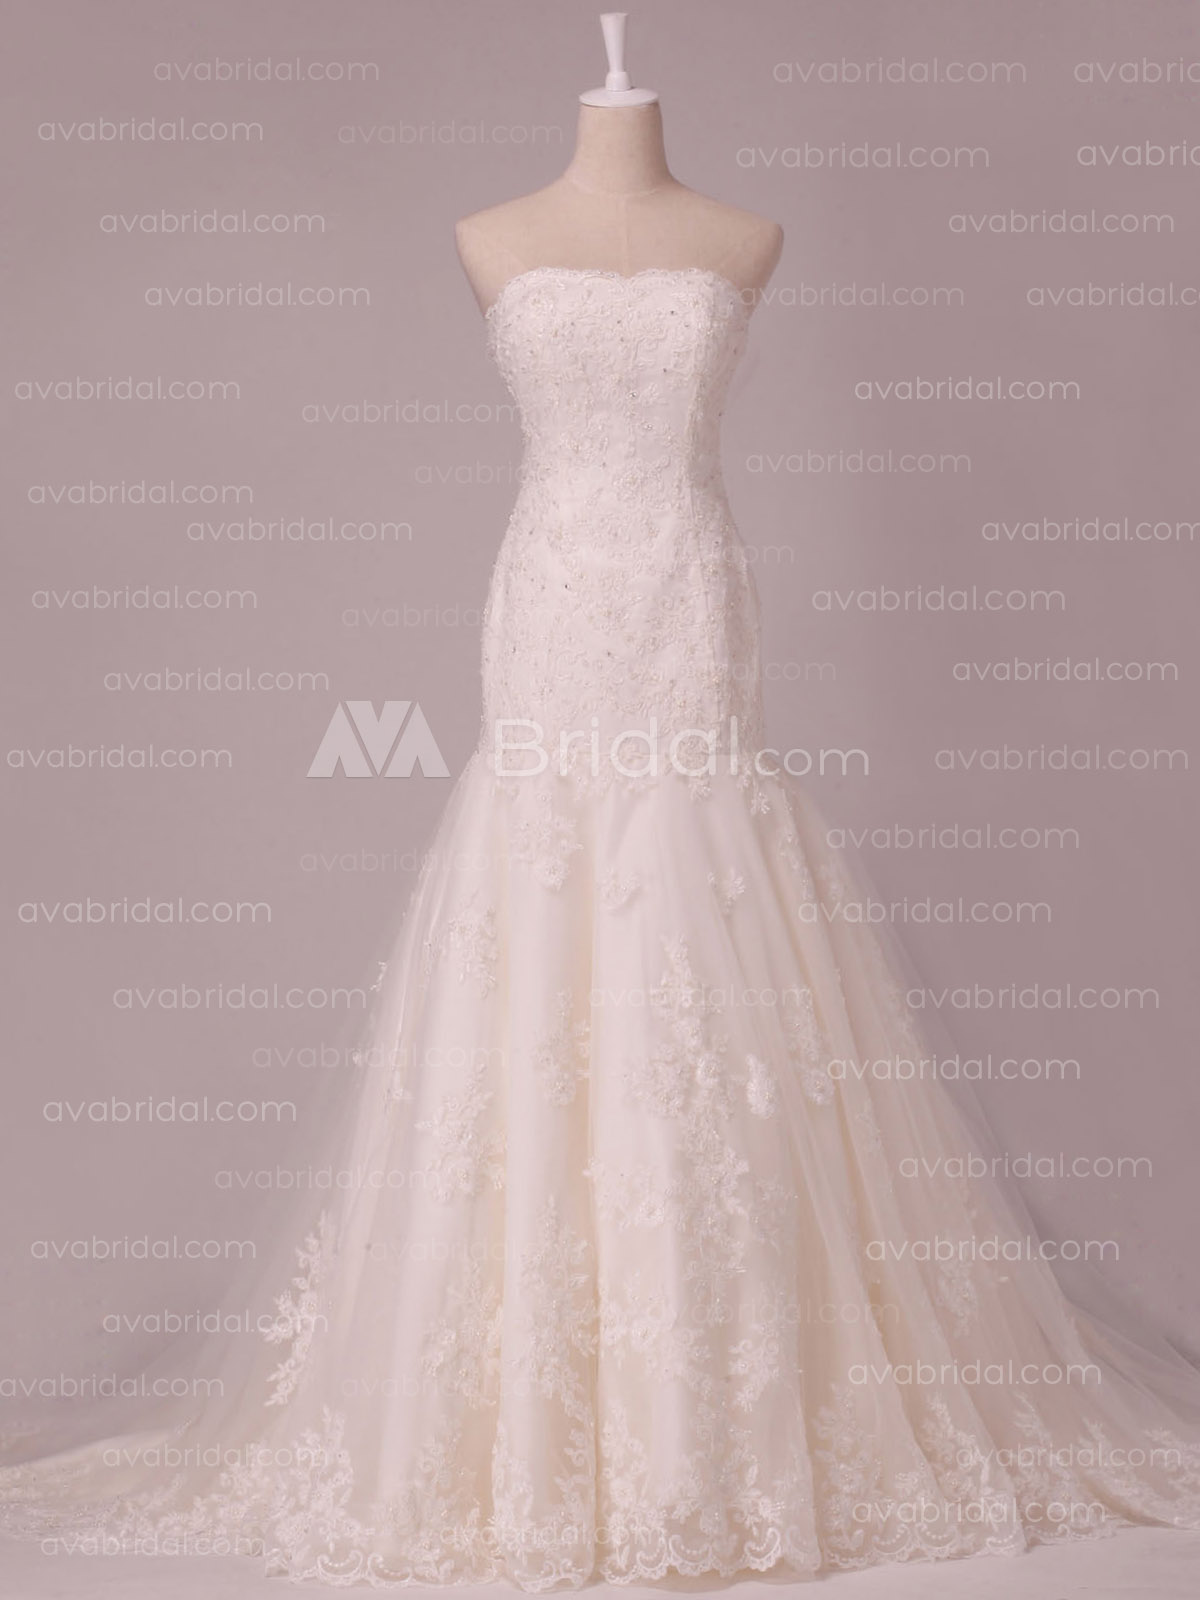 Lace Wedding Gown - Zita - Front